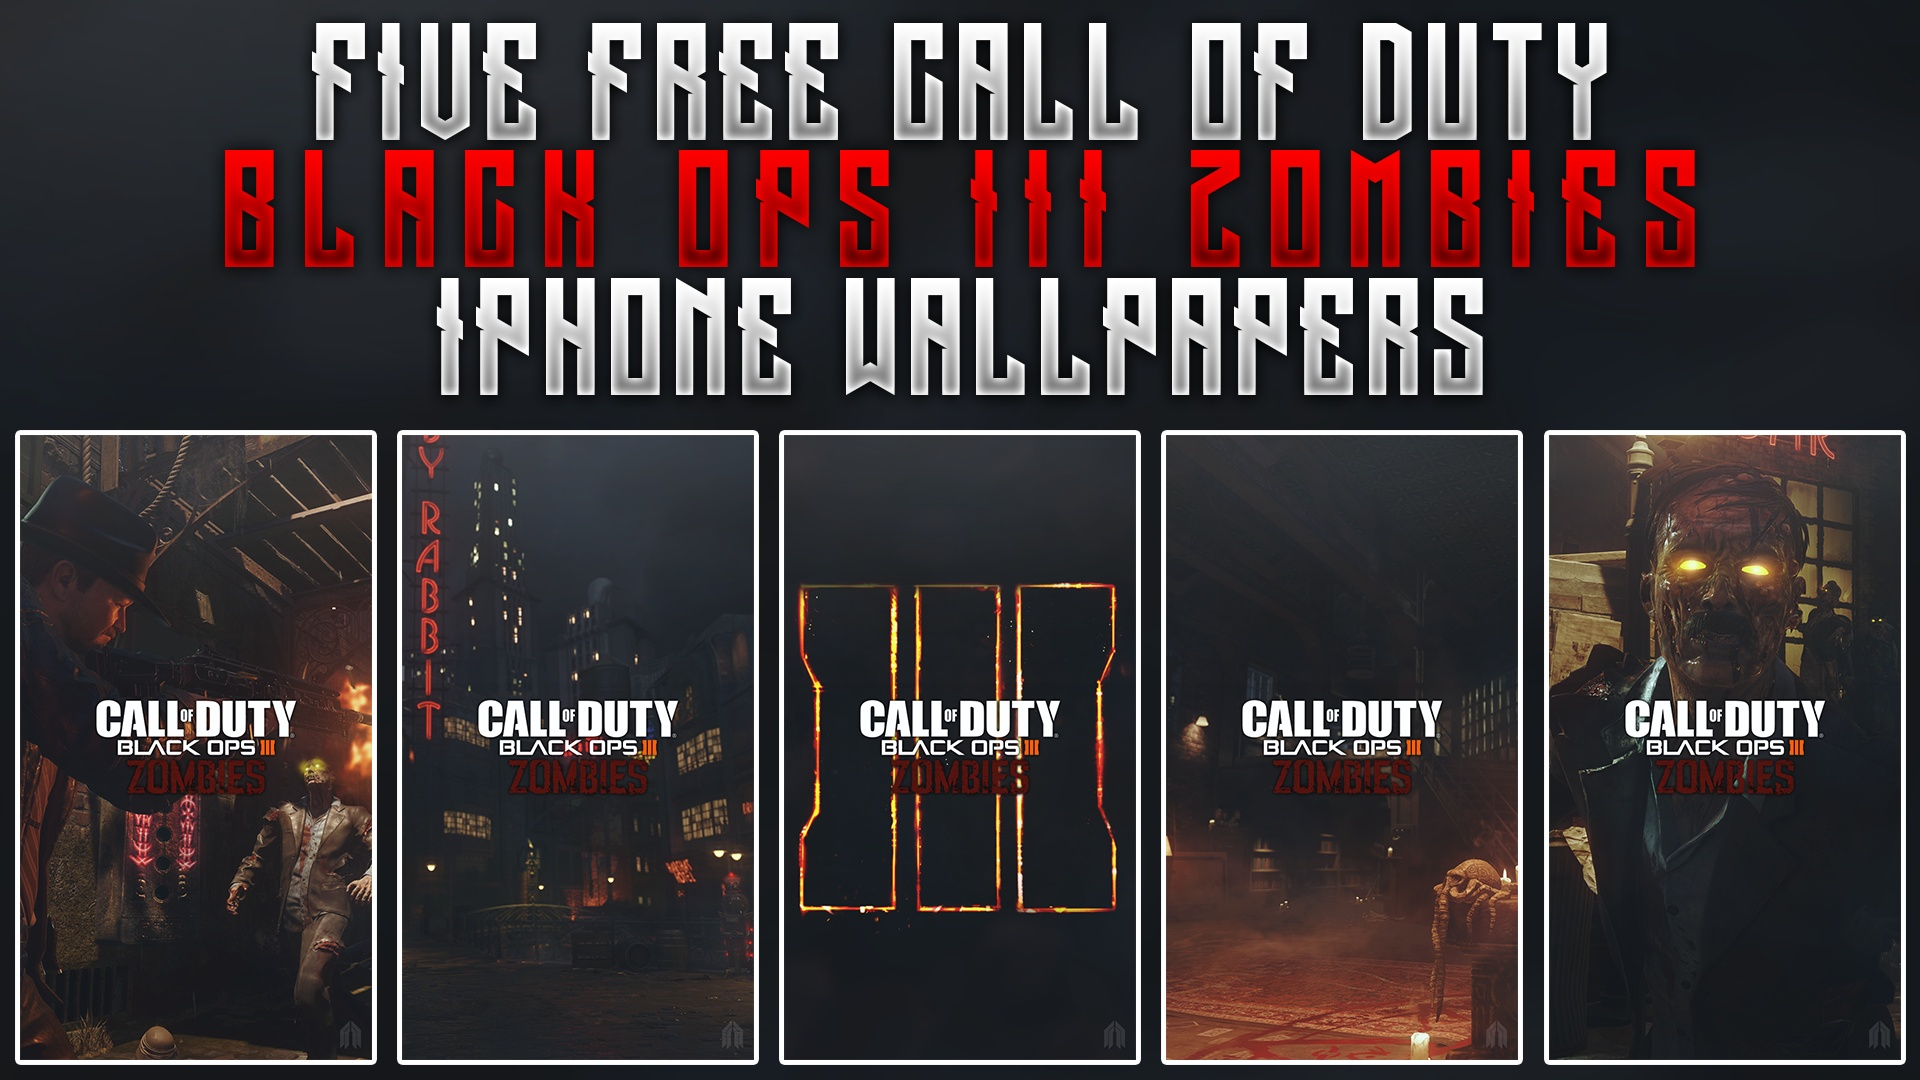 Black Ops Iii Zombies Iphone Wallpaper Pack Acez Graphics